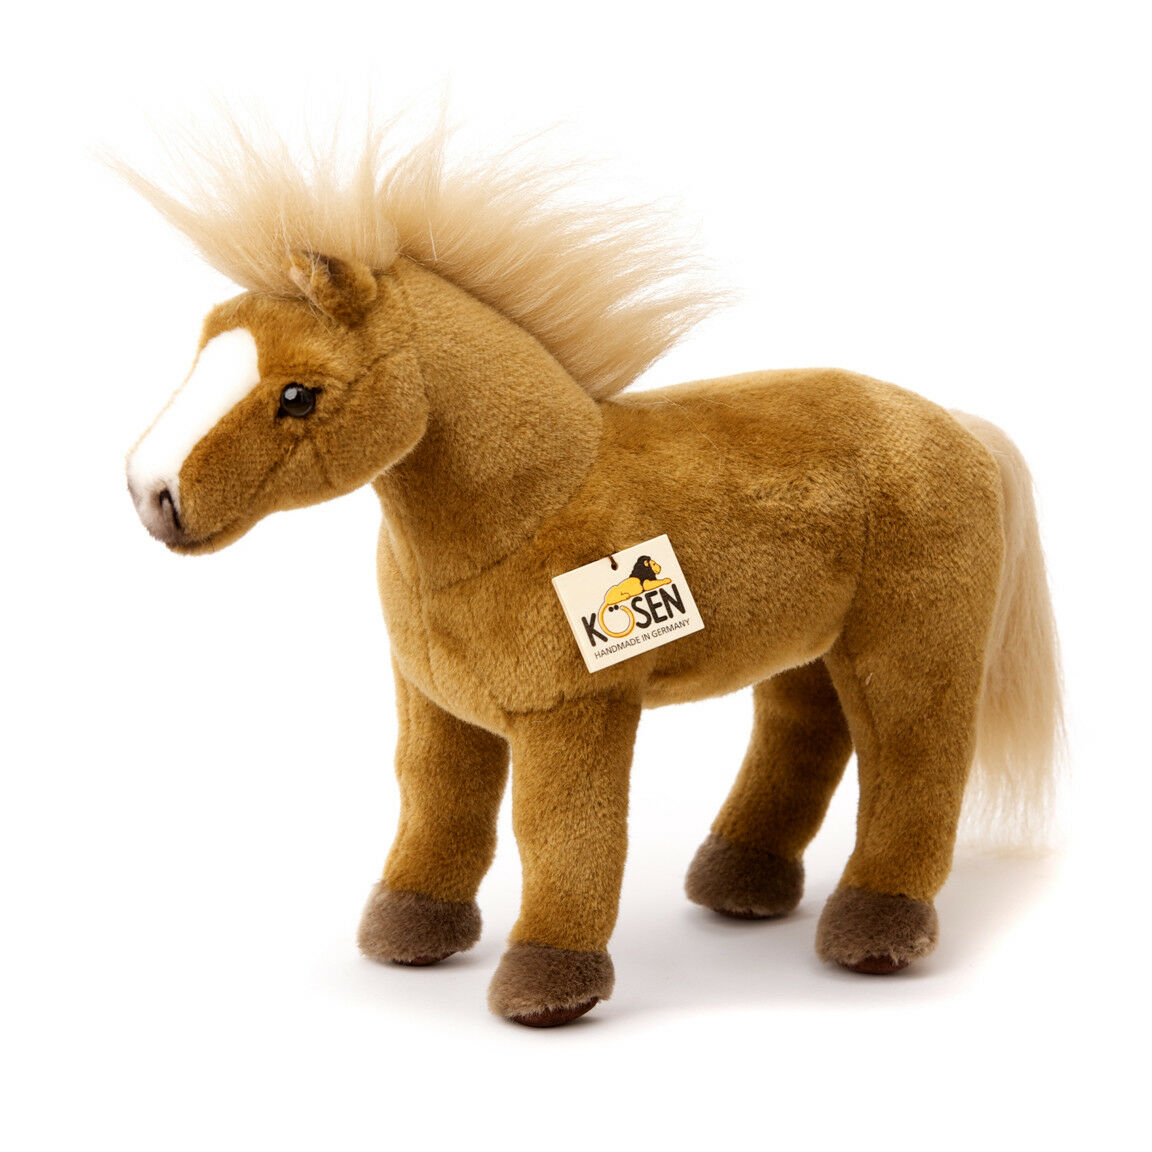 Haflinger horse collectable plush soft toy - Kosen   Kösen - 2571